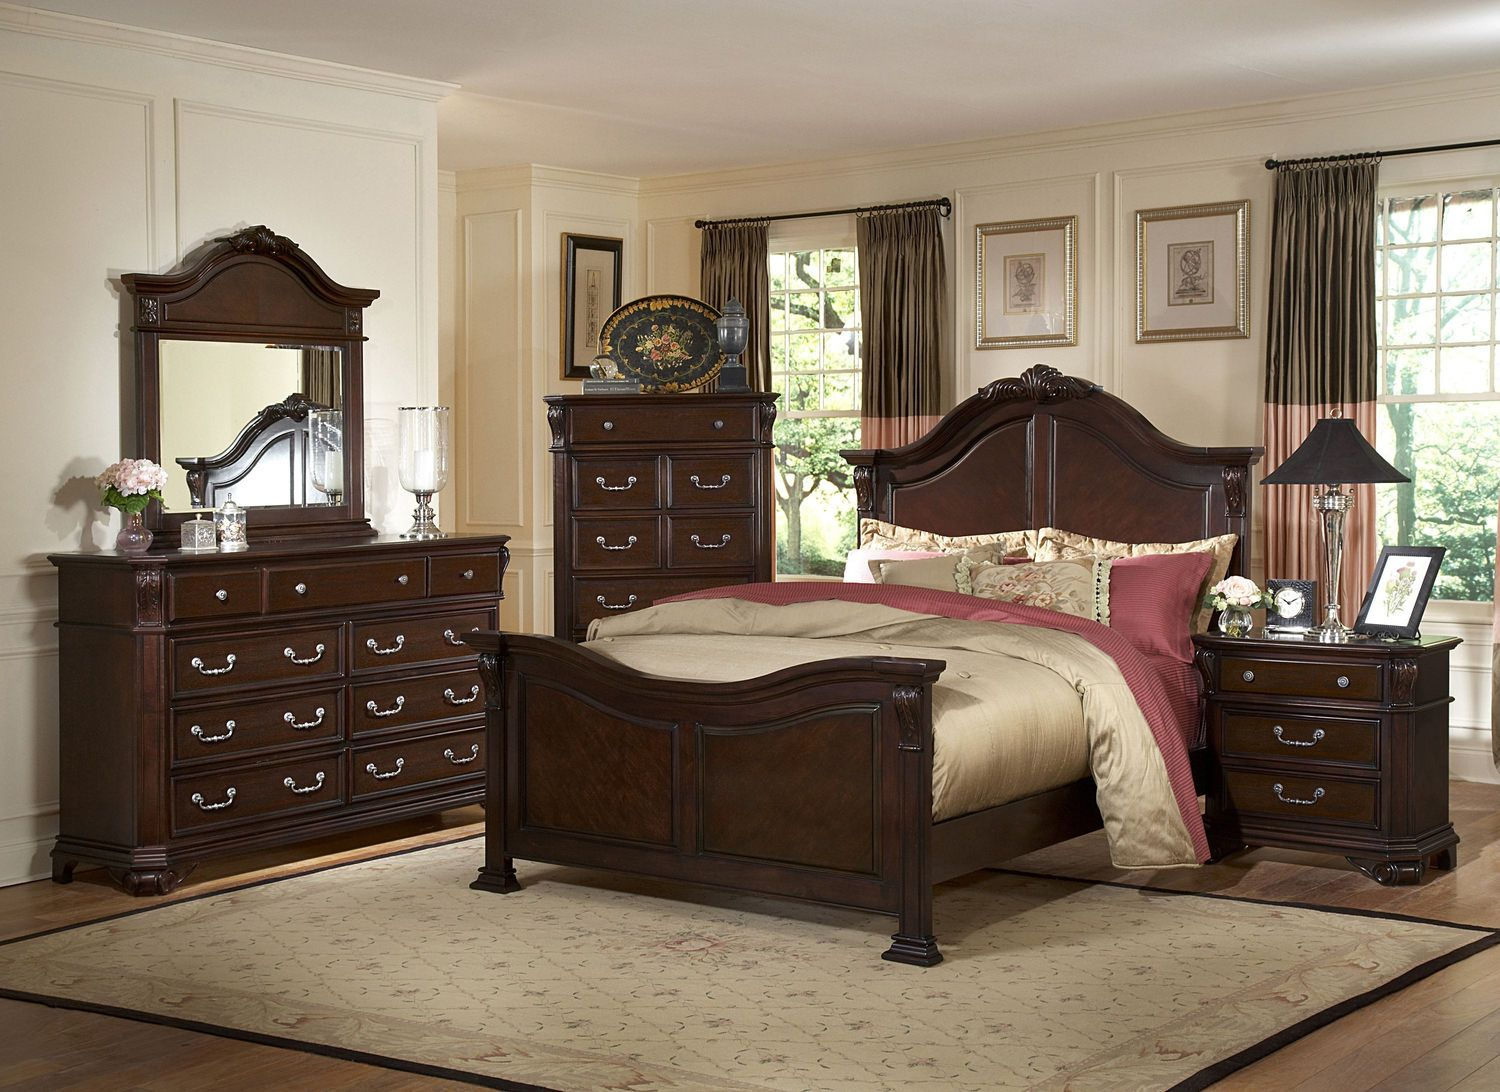 Emilie queen bedroom set for the home dream home pinterest